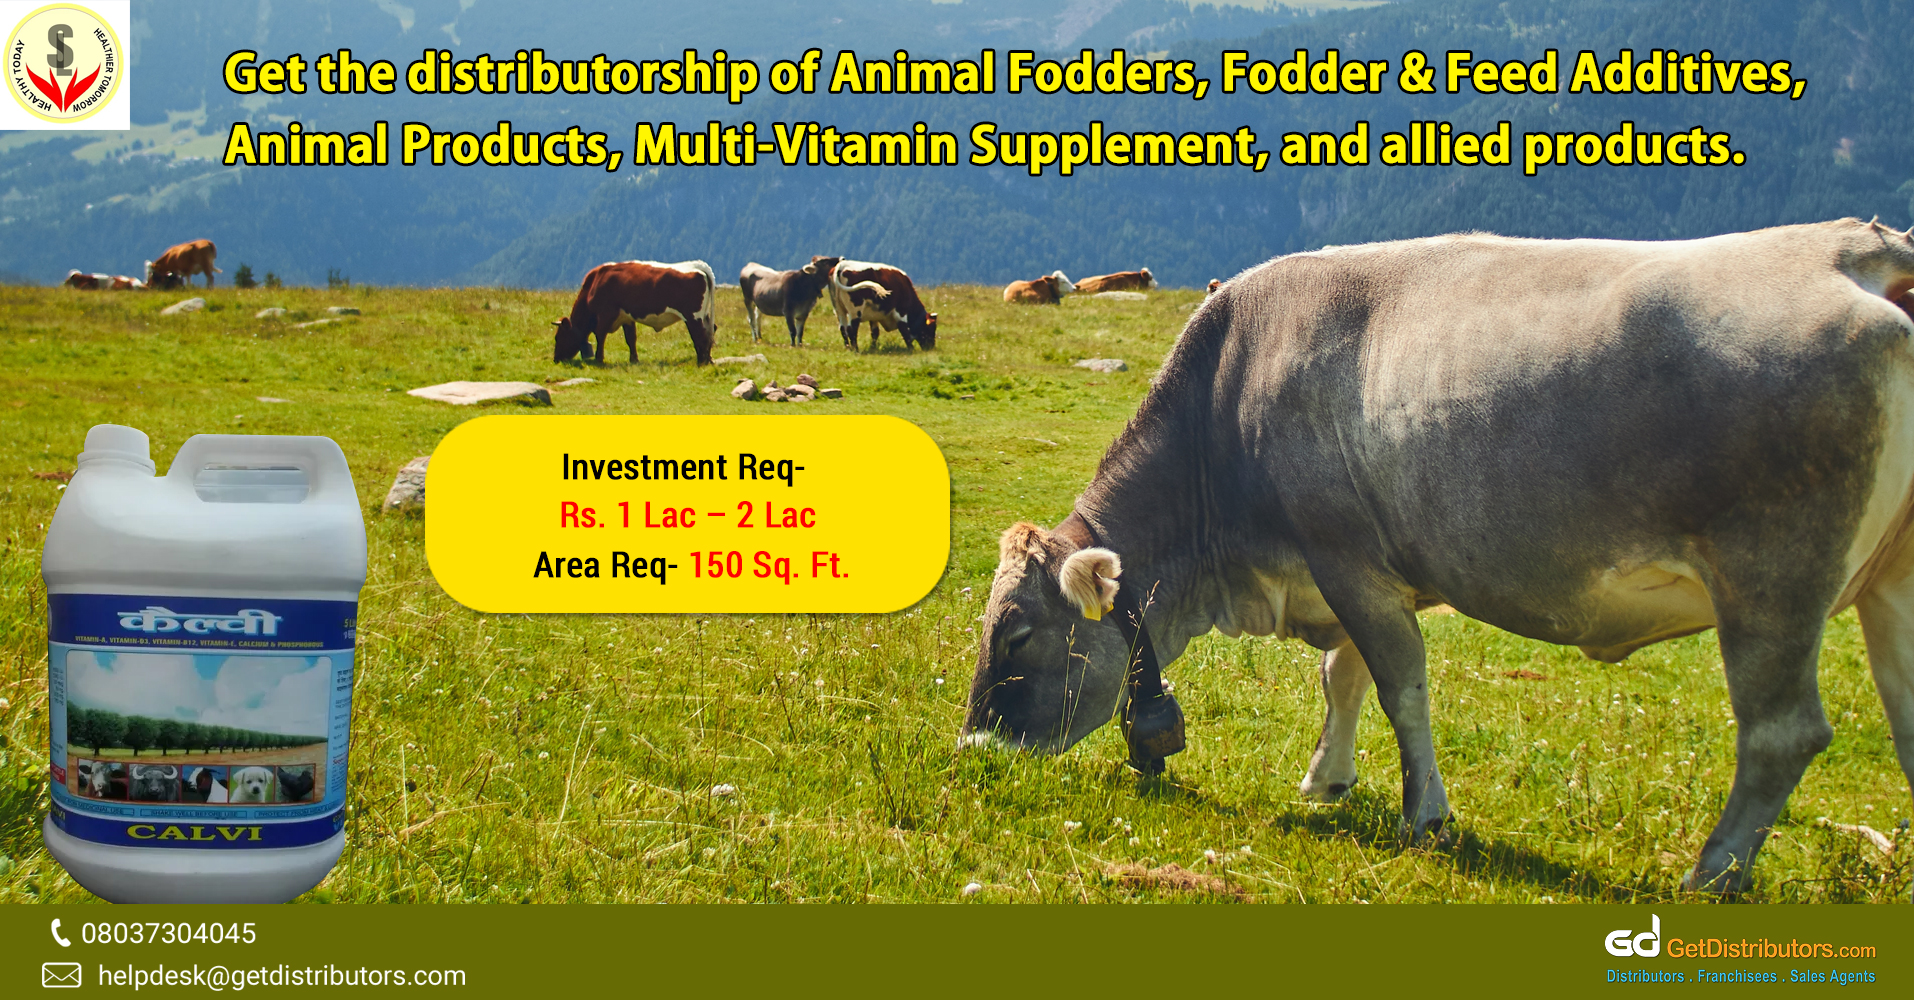 Offering a wide range of animal fodder and supplements for distribution